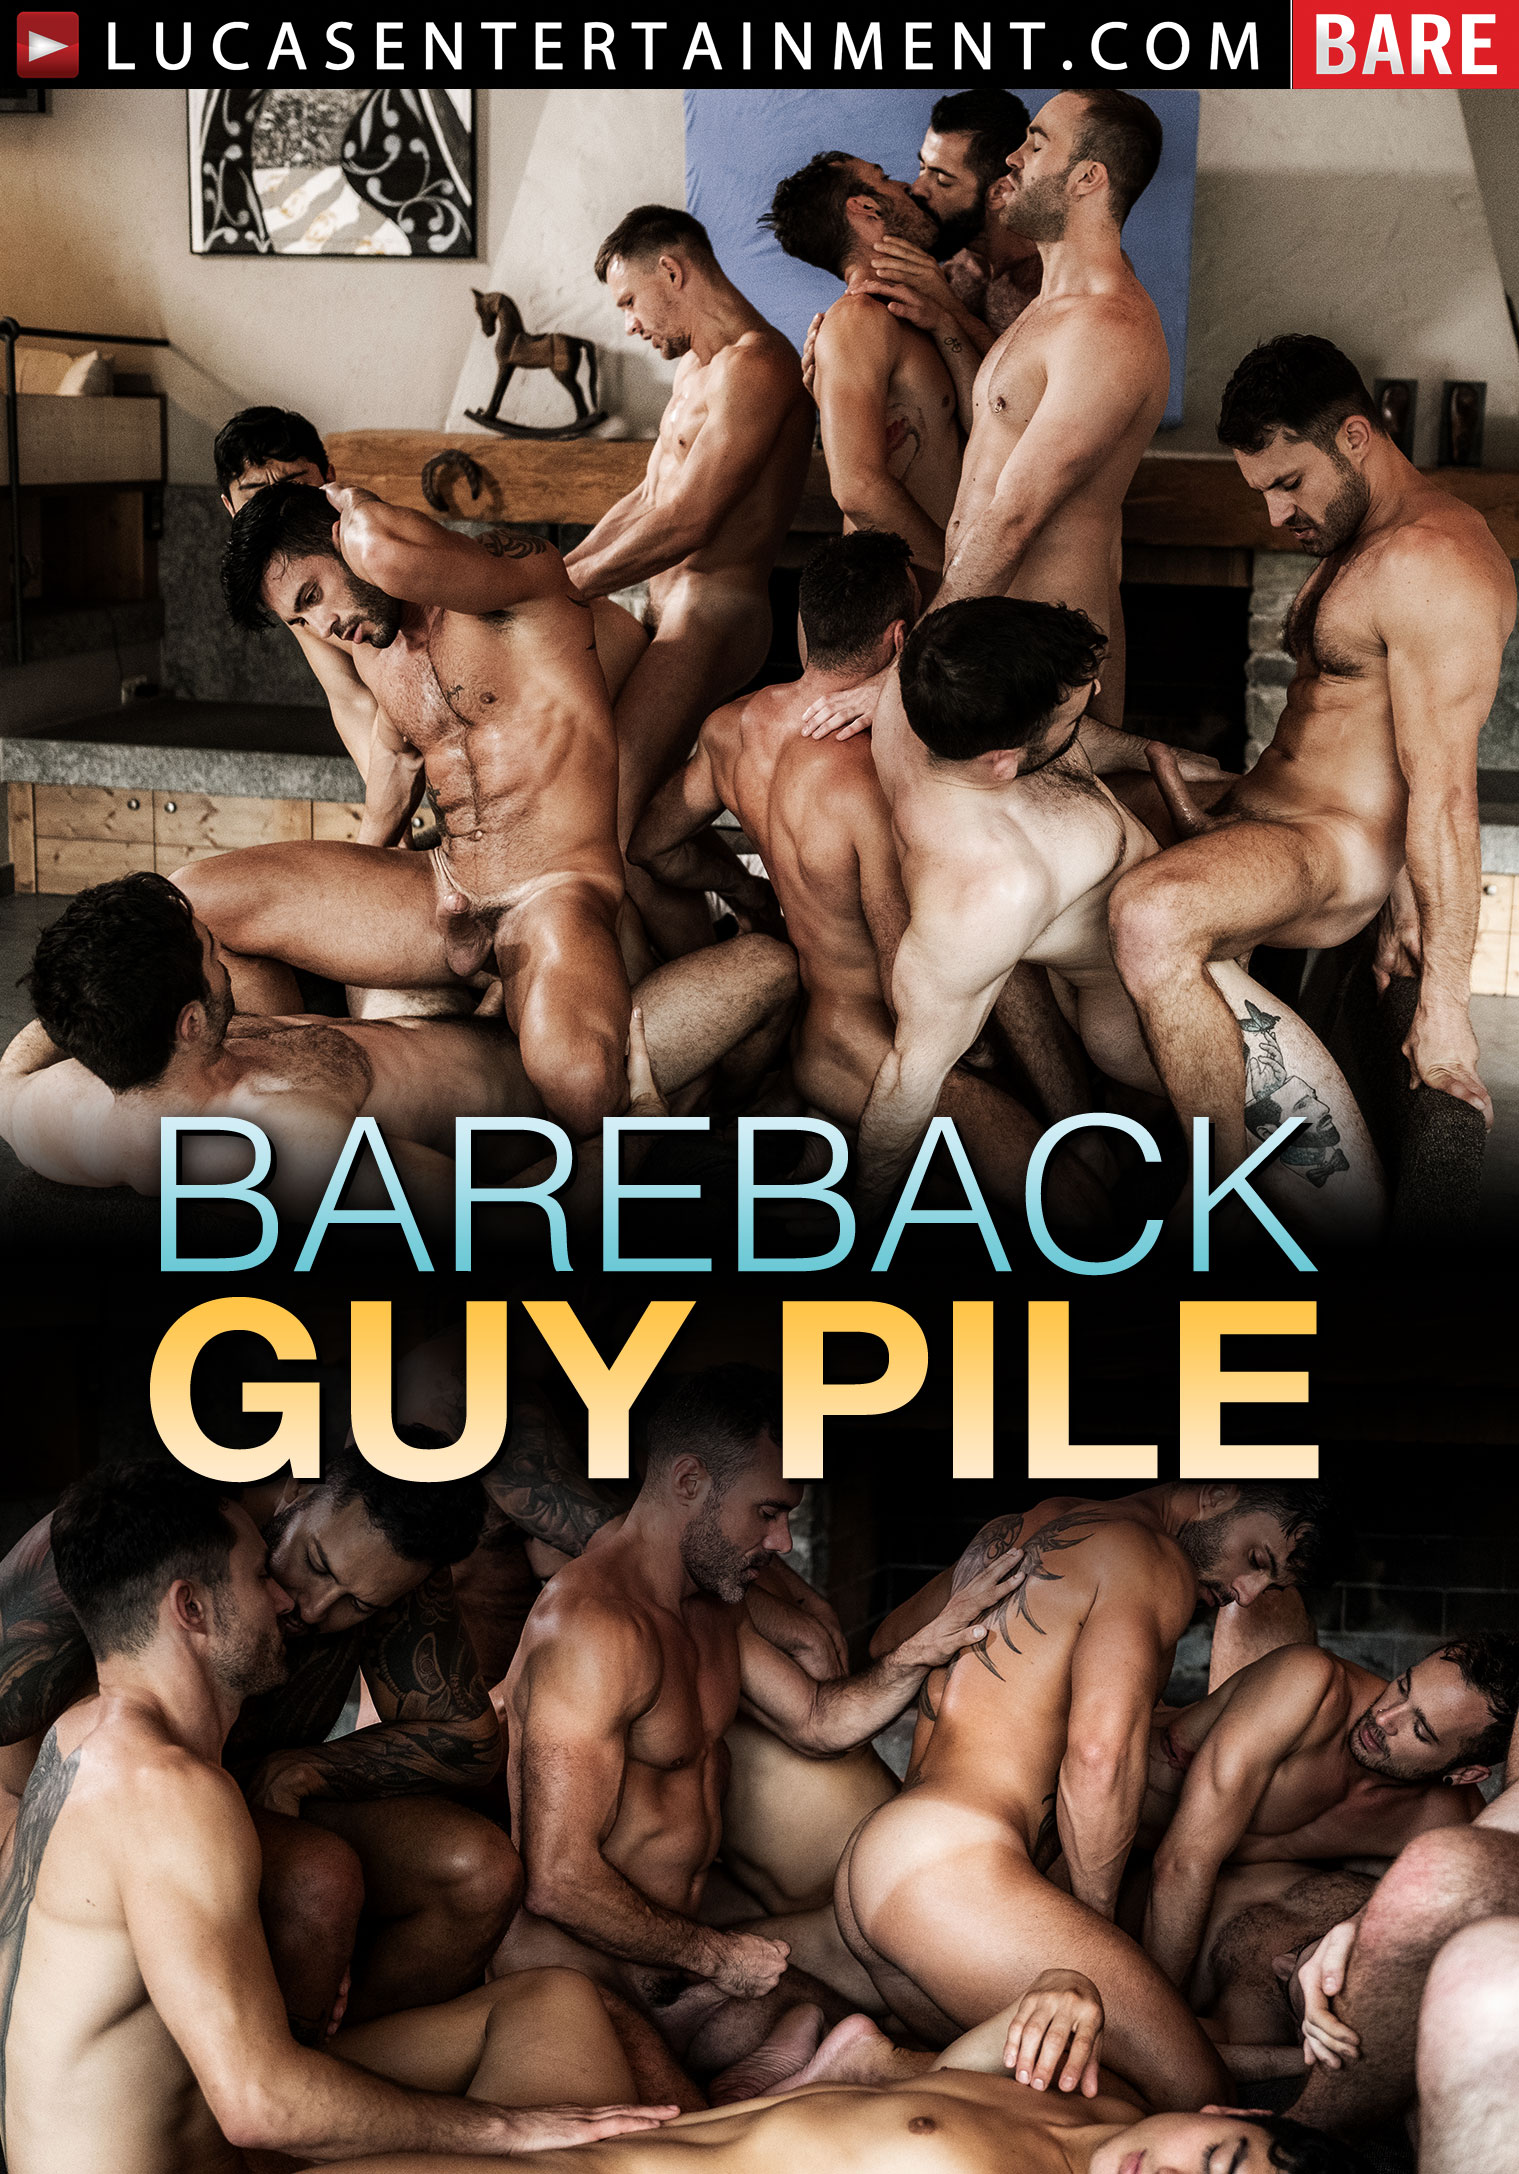 I always will movie bareback